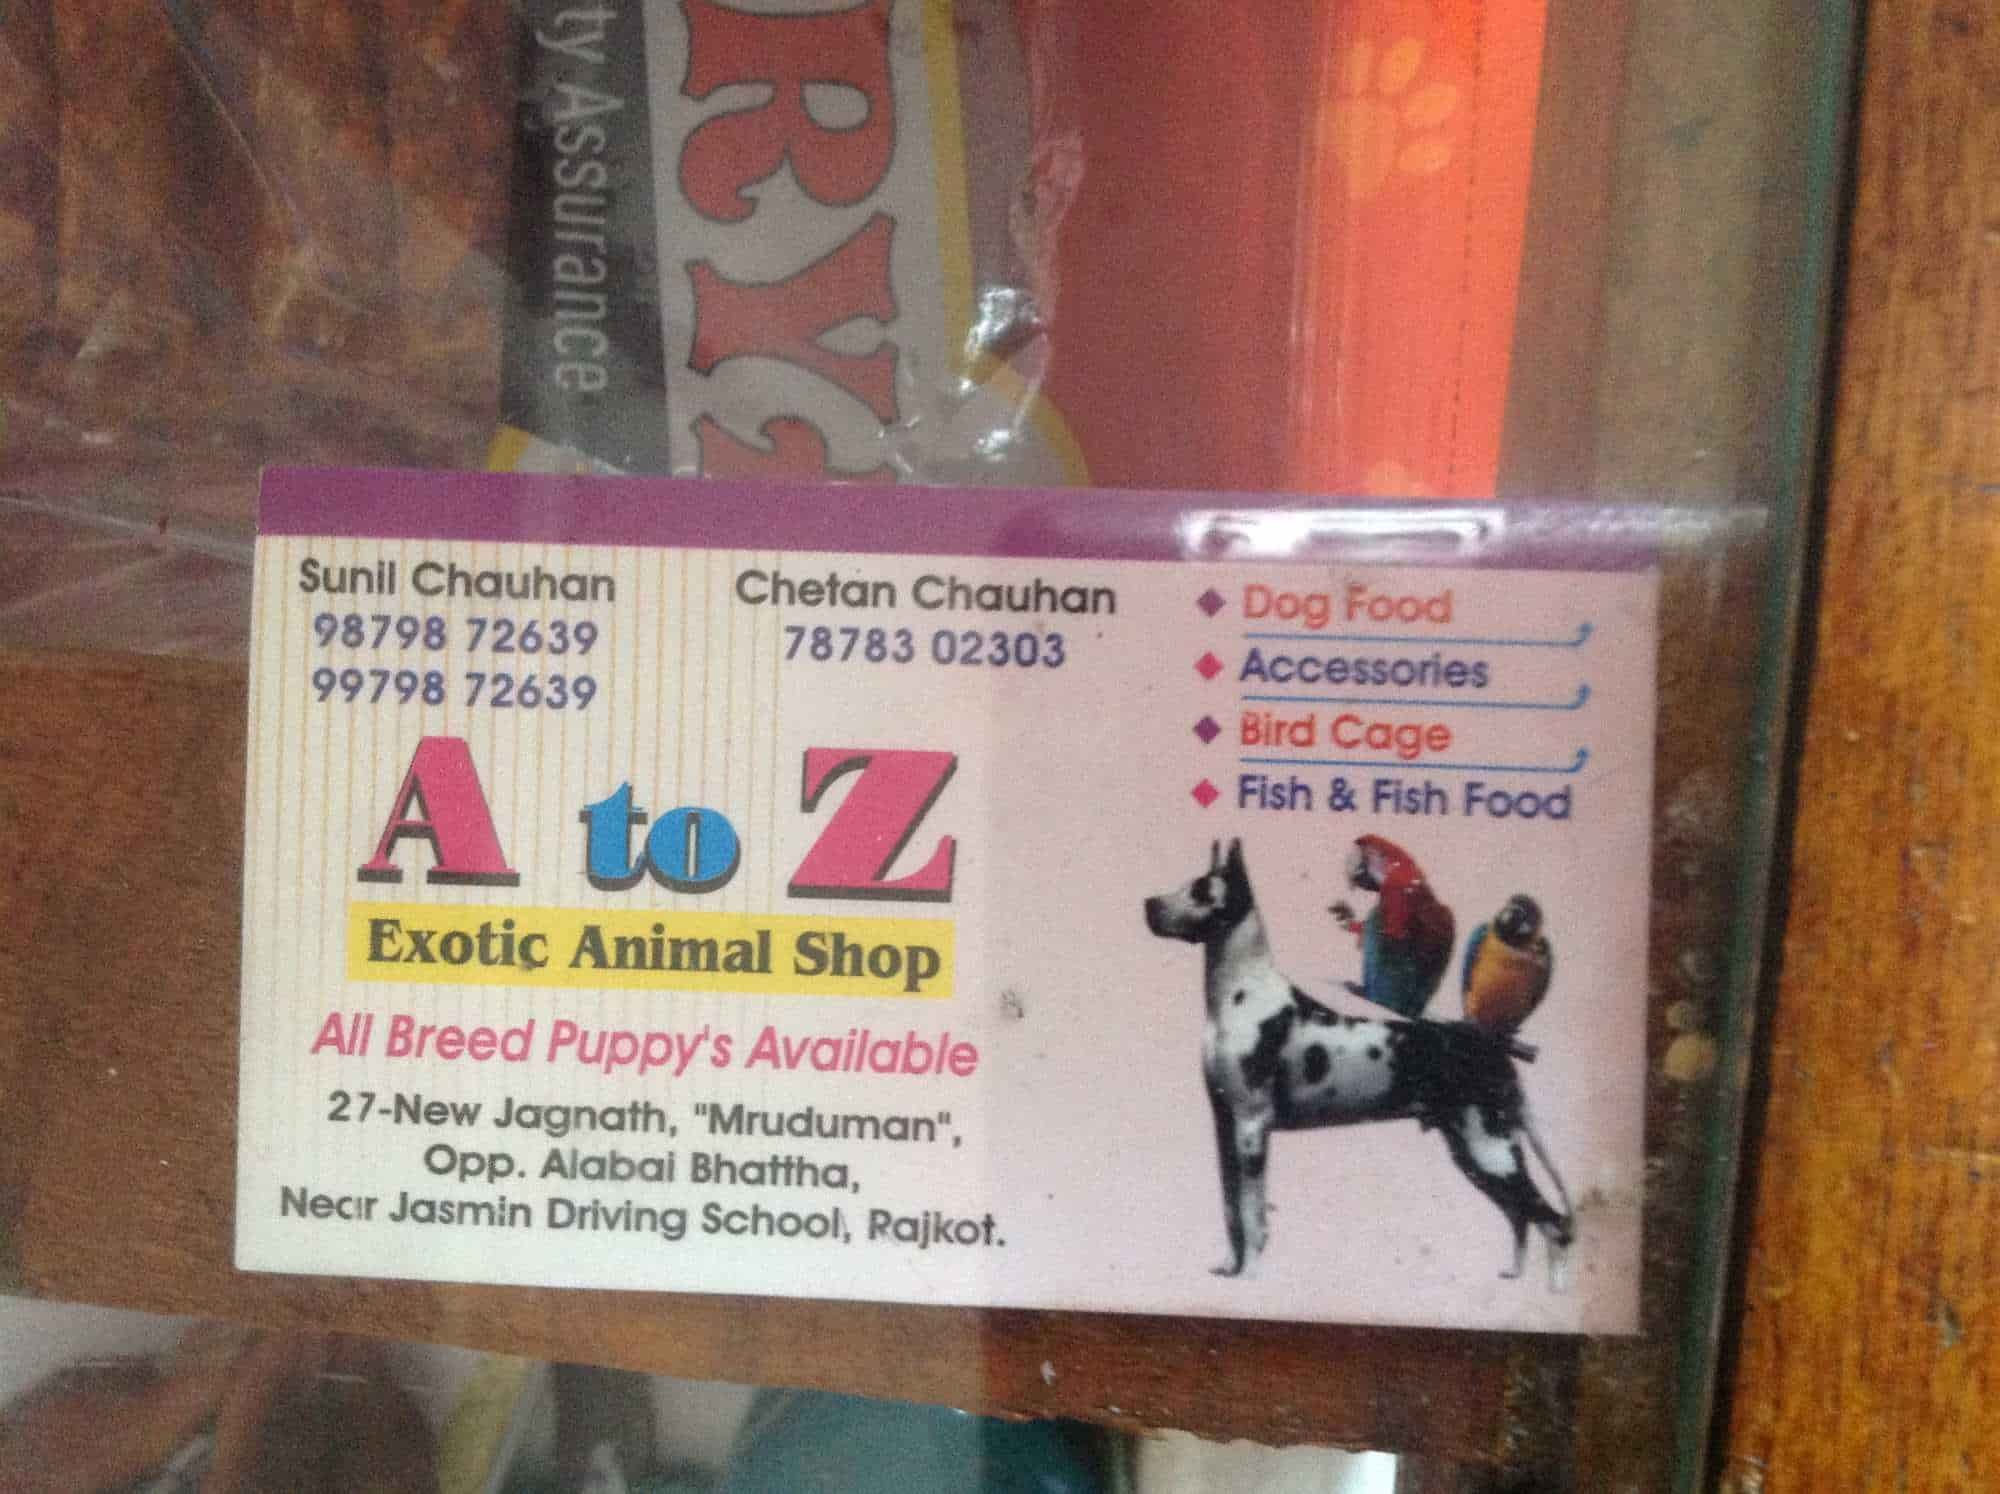 A To Z Exotic Animal Shop Photos New Jagnath Road Rajkot Pictures